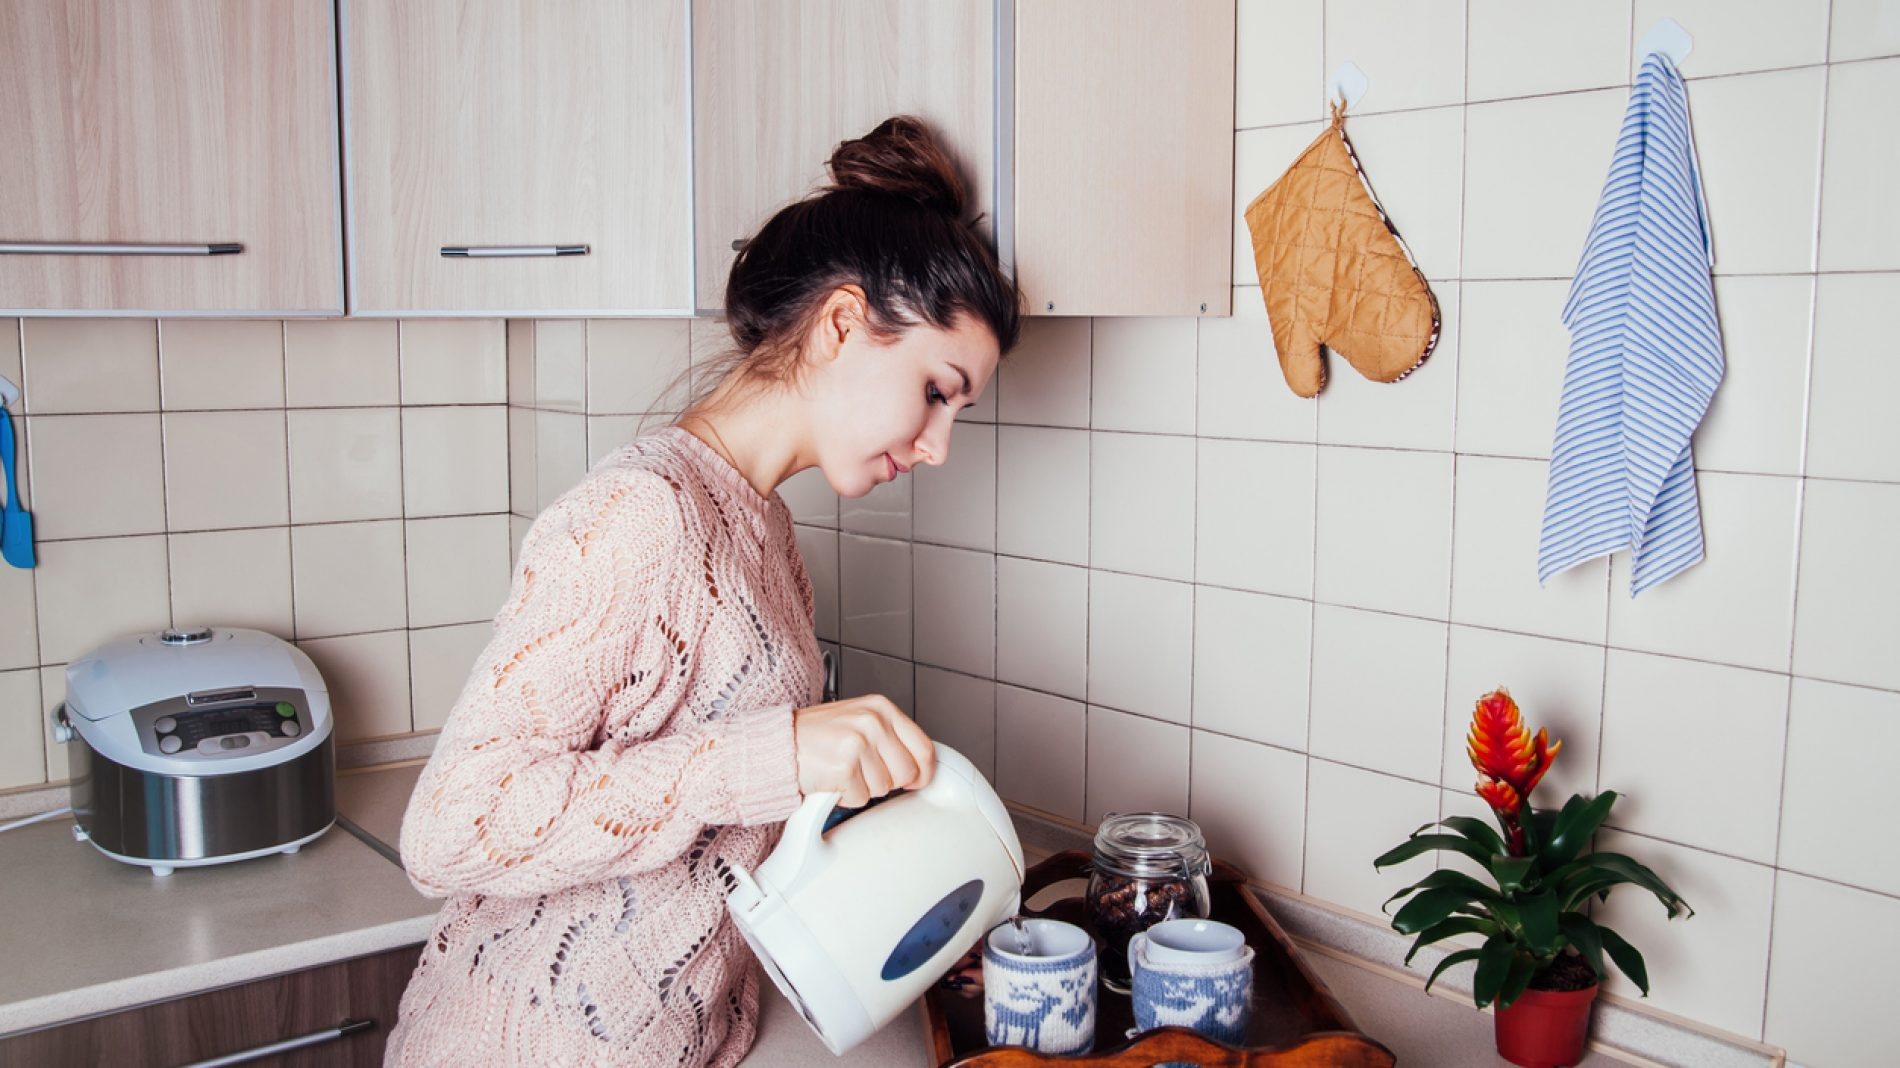 Young woman preparing tea in the kitchen. Pouring water into a cup.